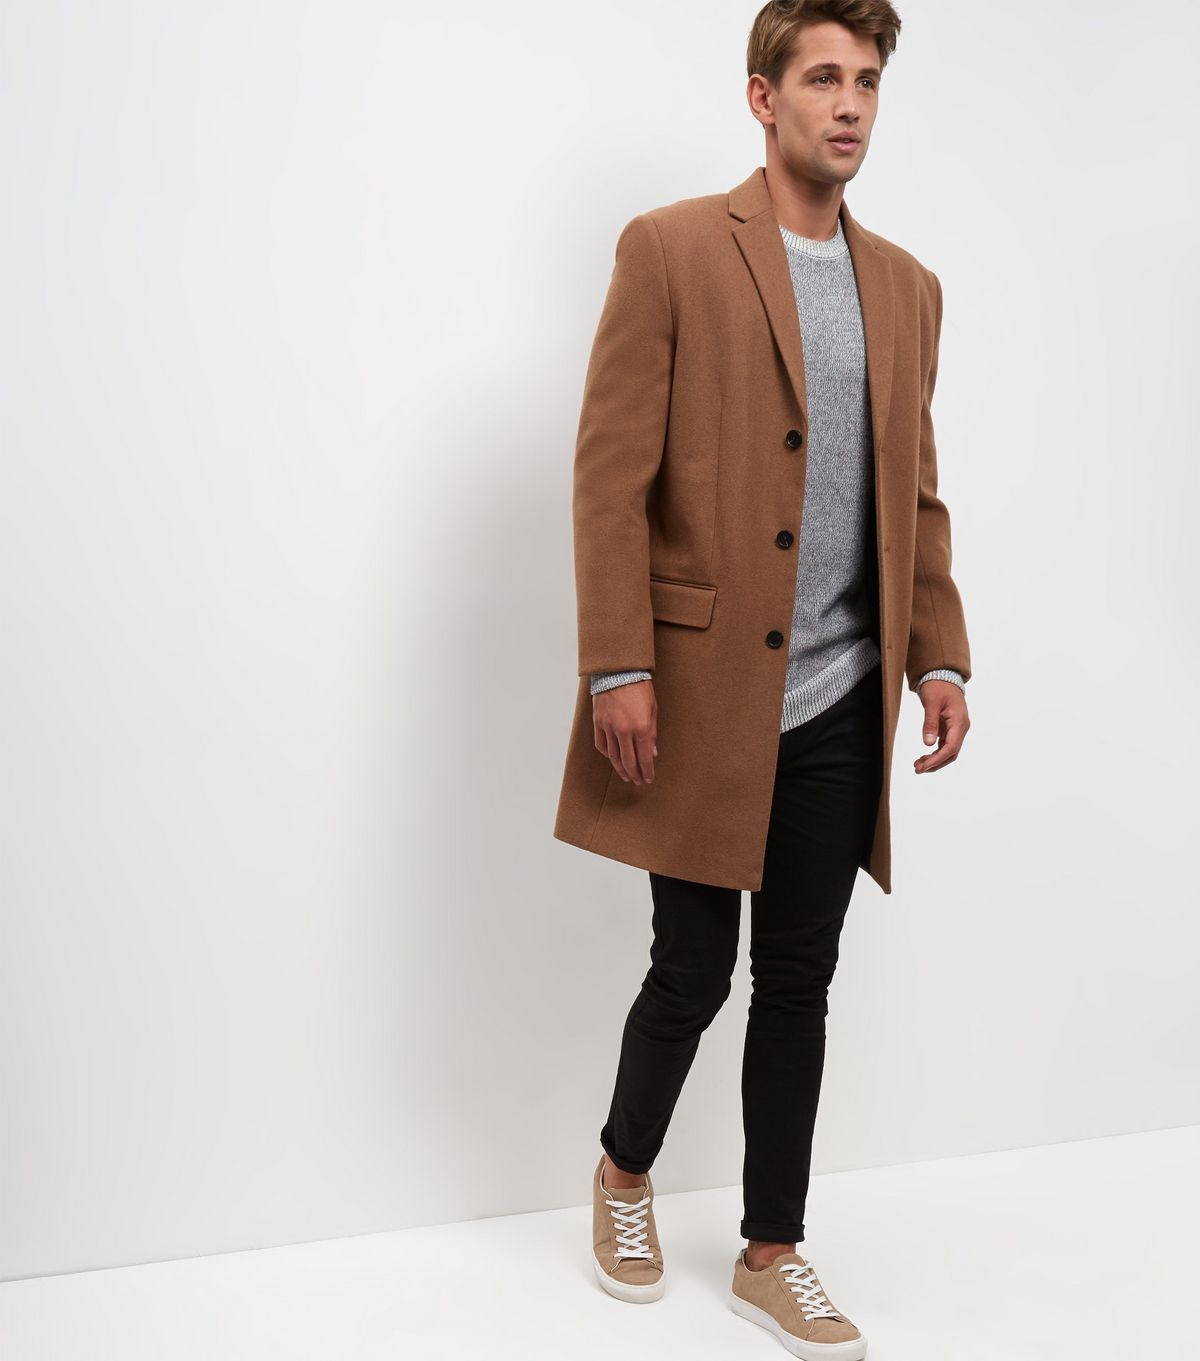 http://media.newlookassets.com/i/newlook/382014017D1/mens/jackets-and-coats/coats/camel-wool-mix-longline-overcoat/?$new_pdp_szoom_image_1200$